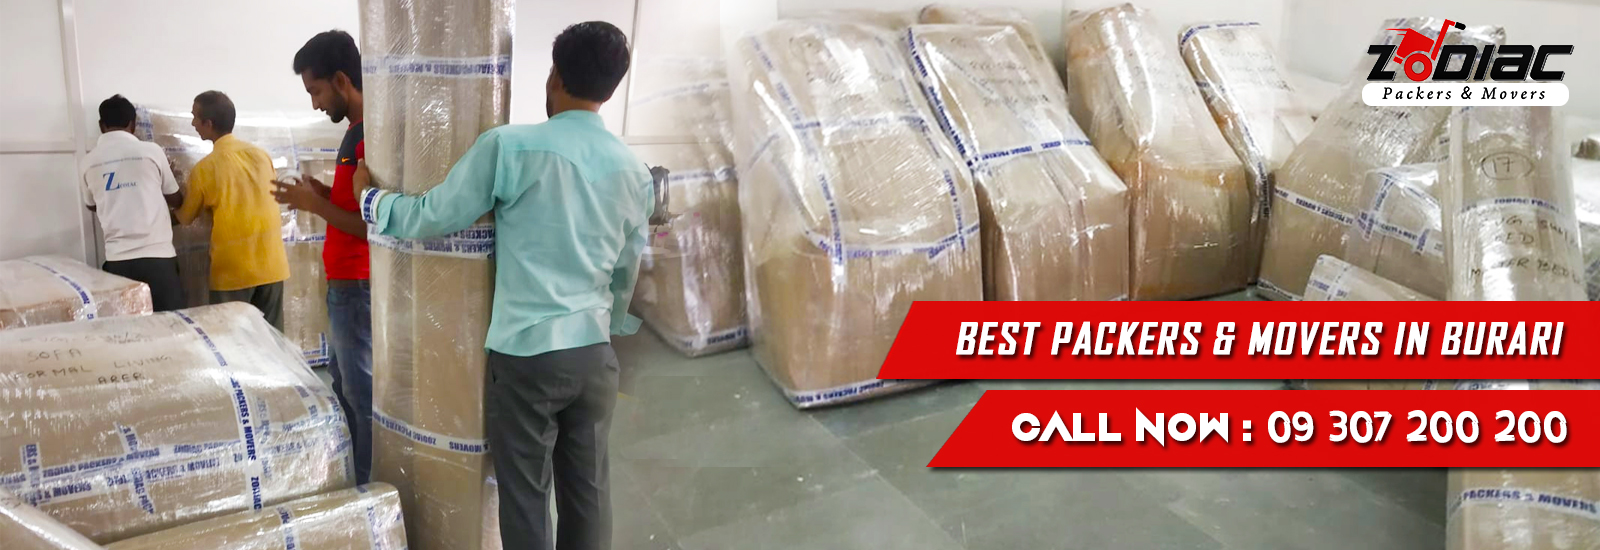 Packers and Movers in Burari